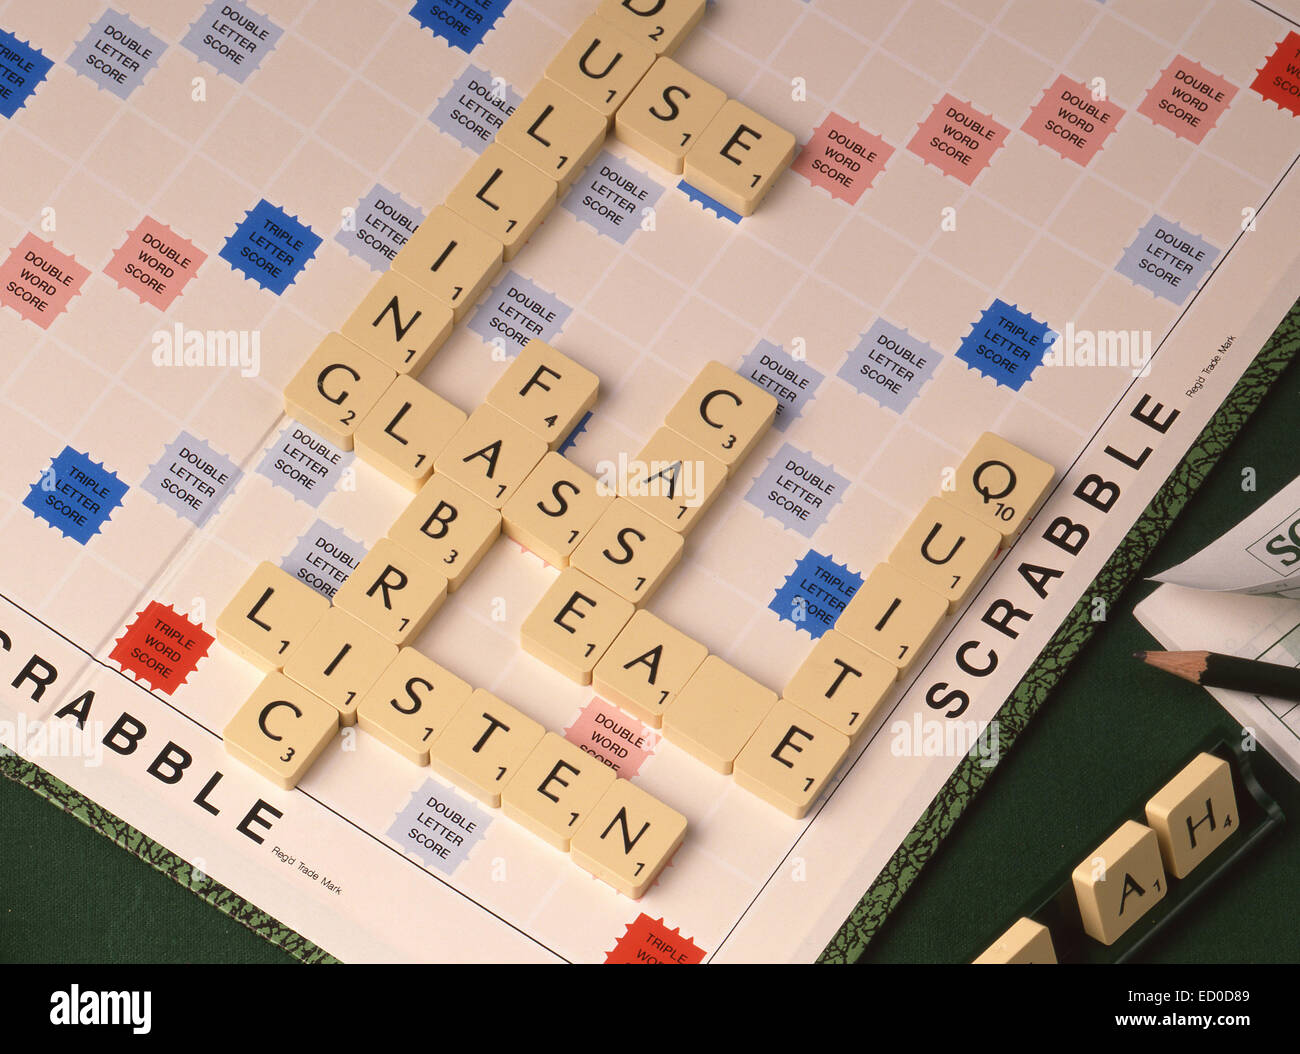 Scrabble board game with tiled letters and pad (still-life) - Stock Image